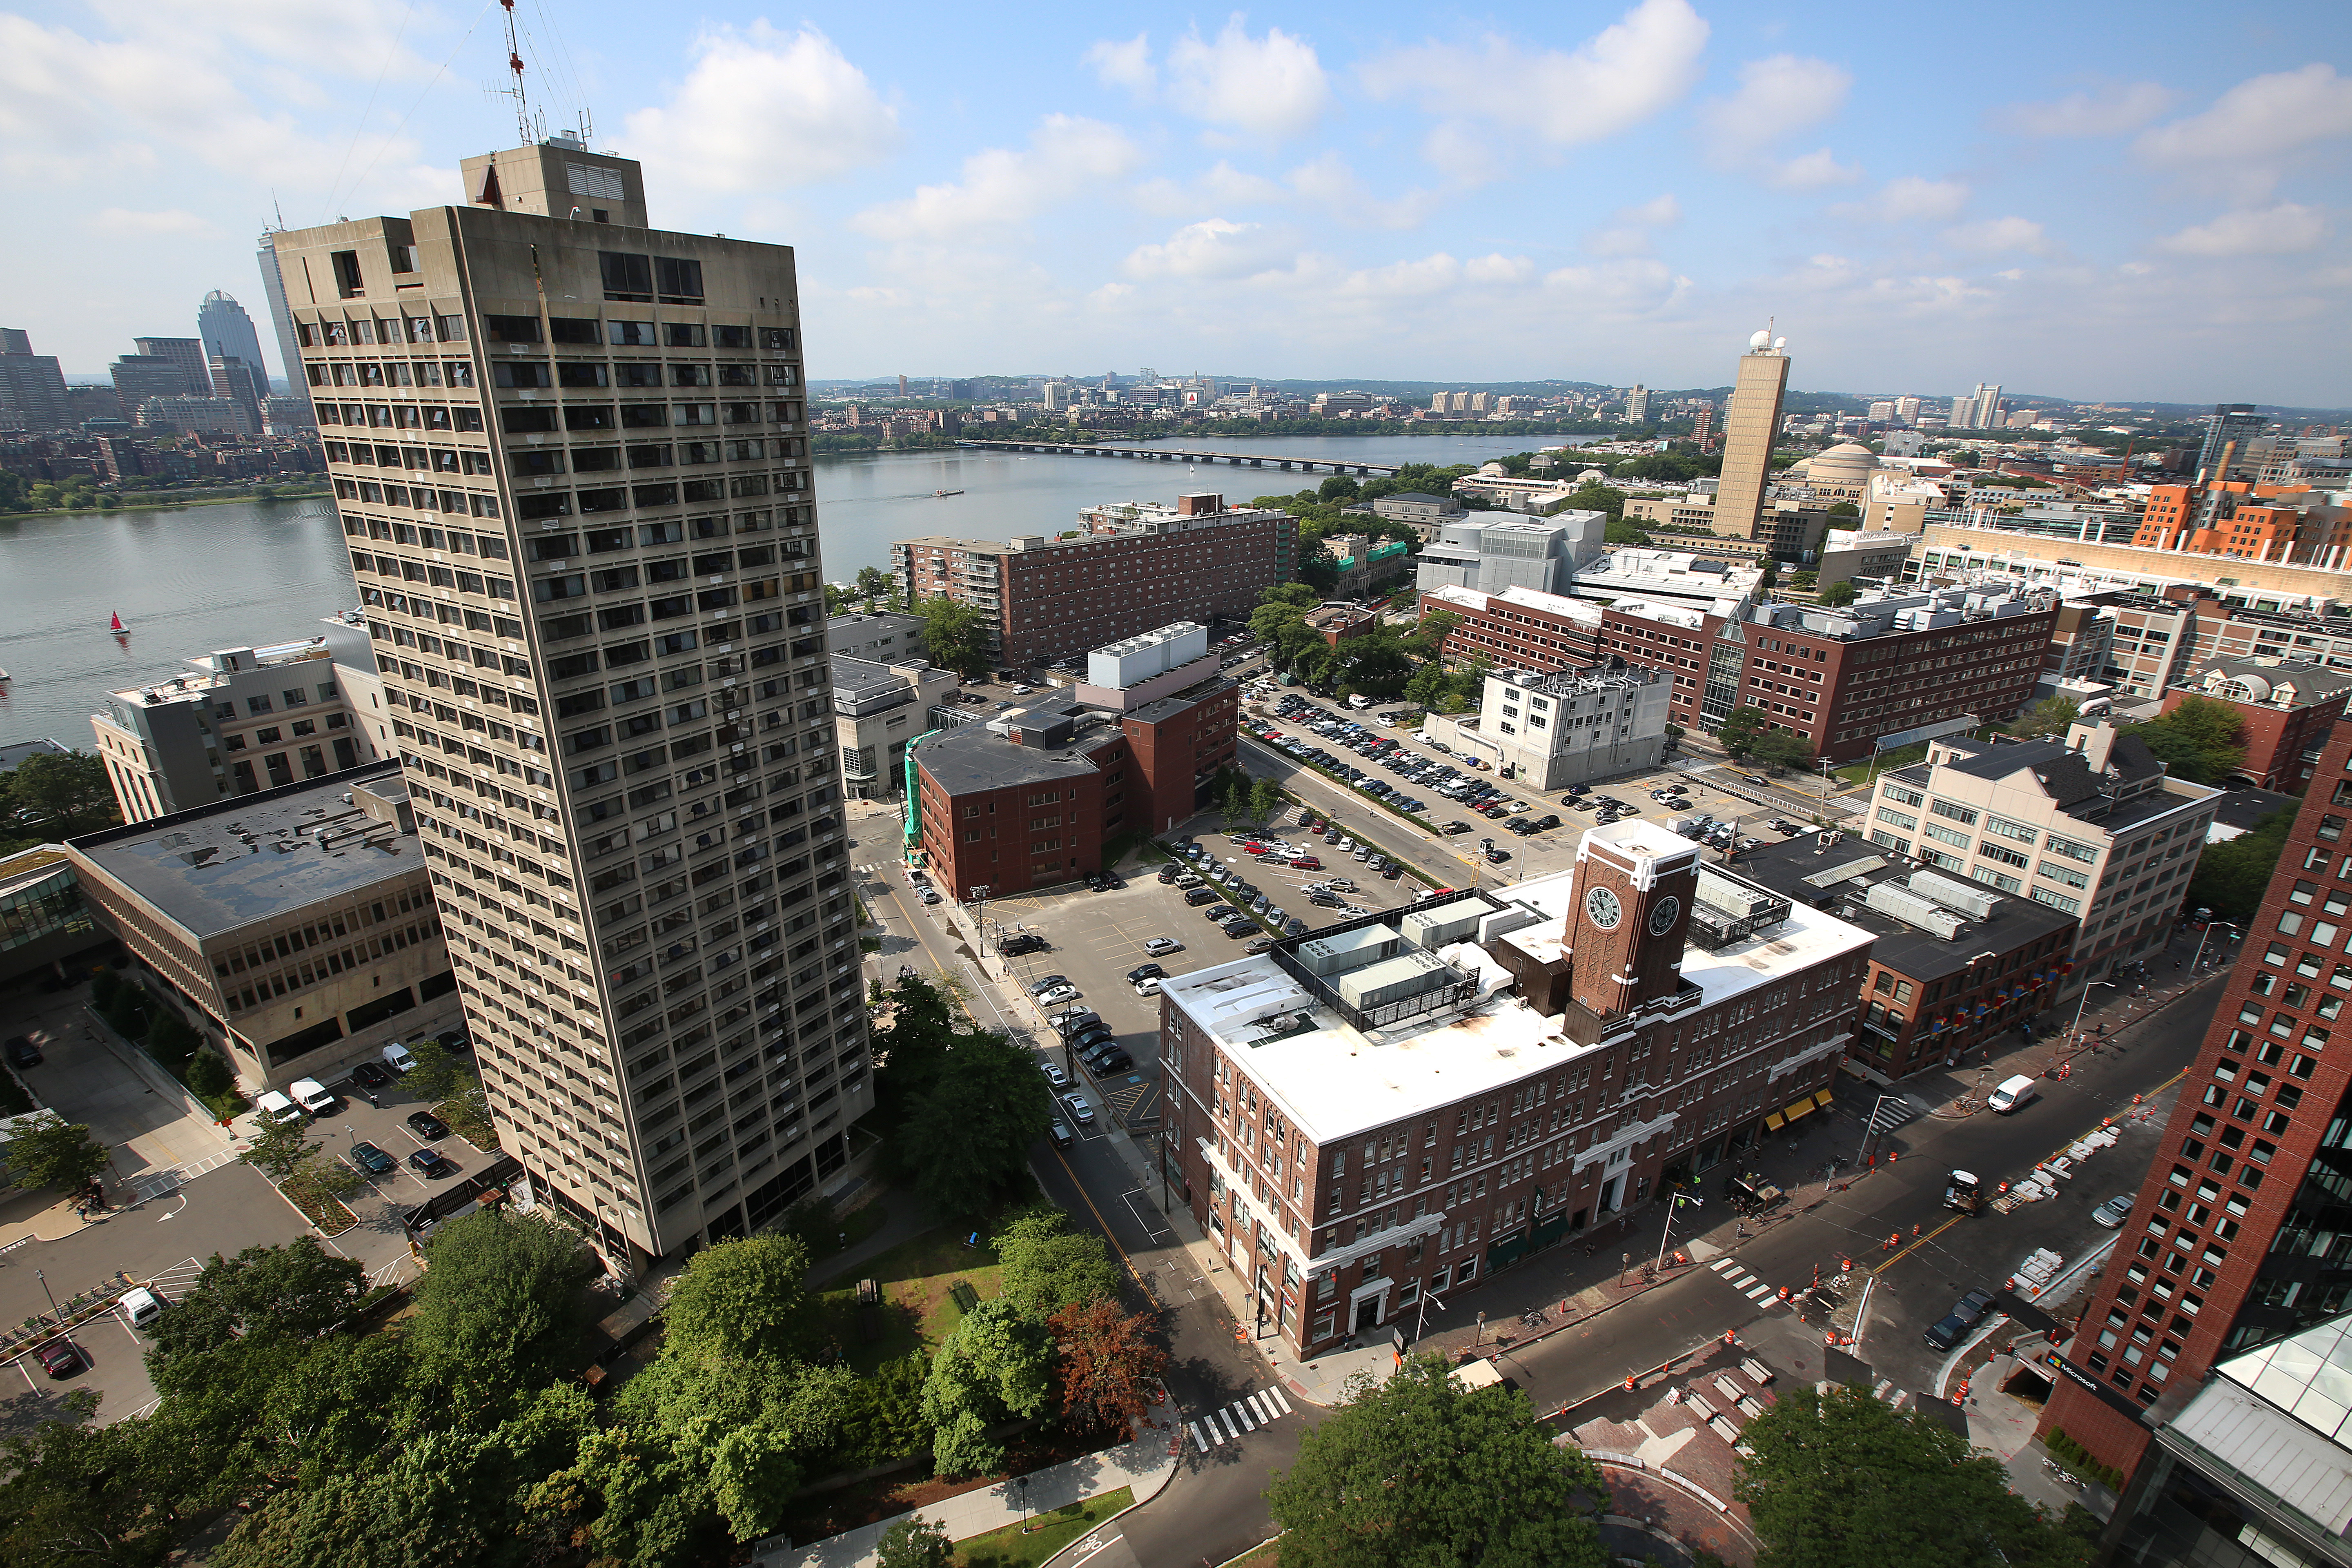 An aerial view of an urban streetscape next to a river, and there's one tall tower.